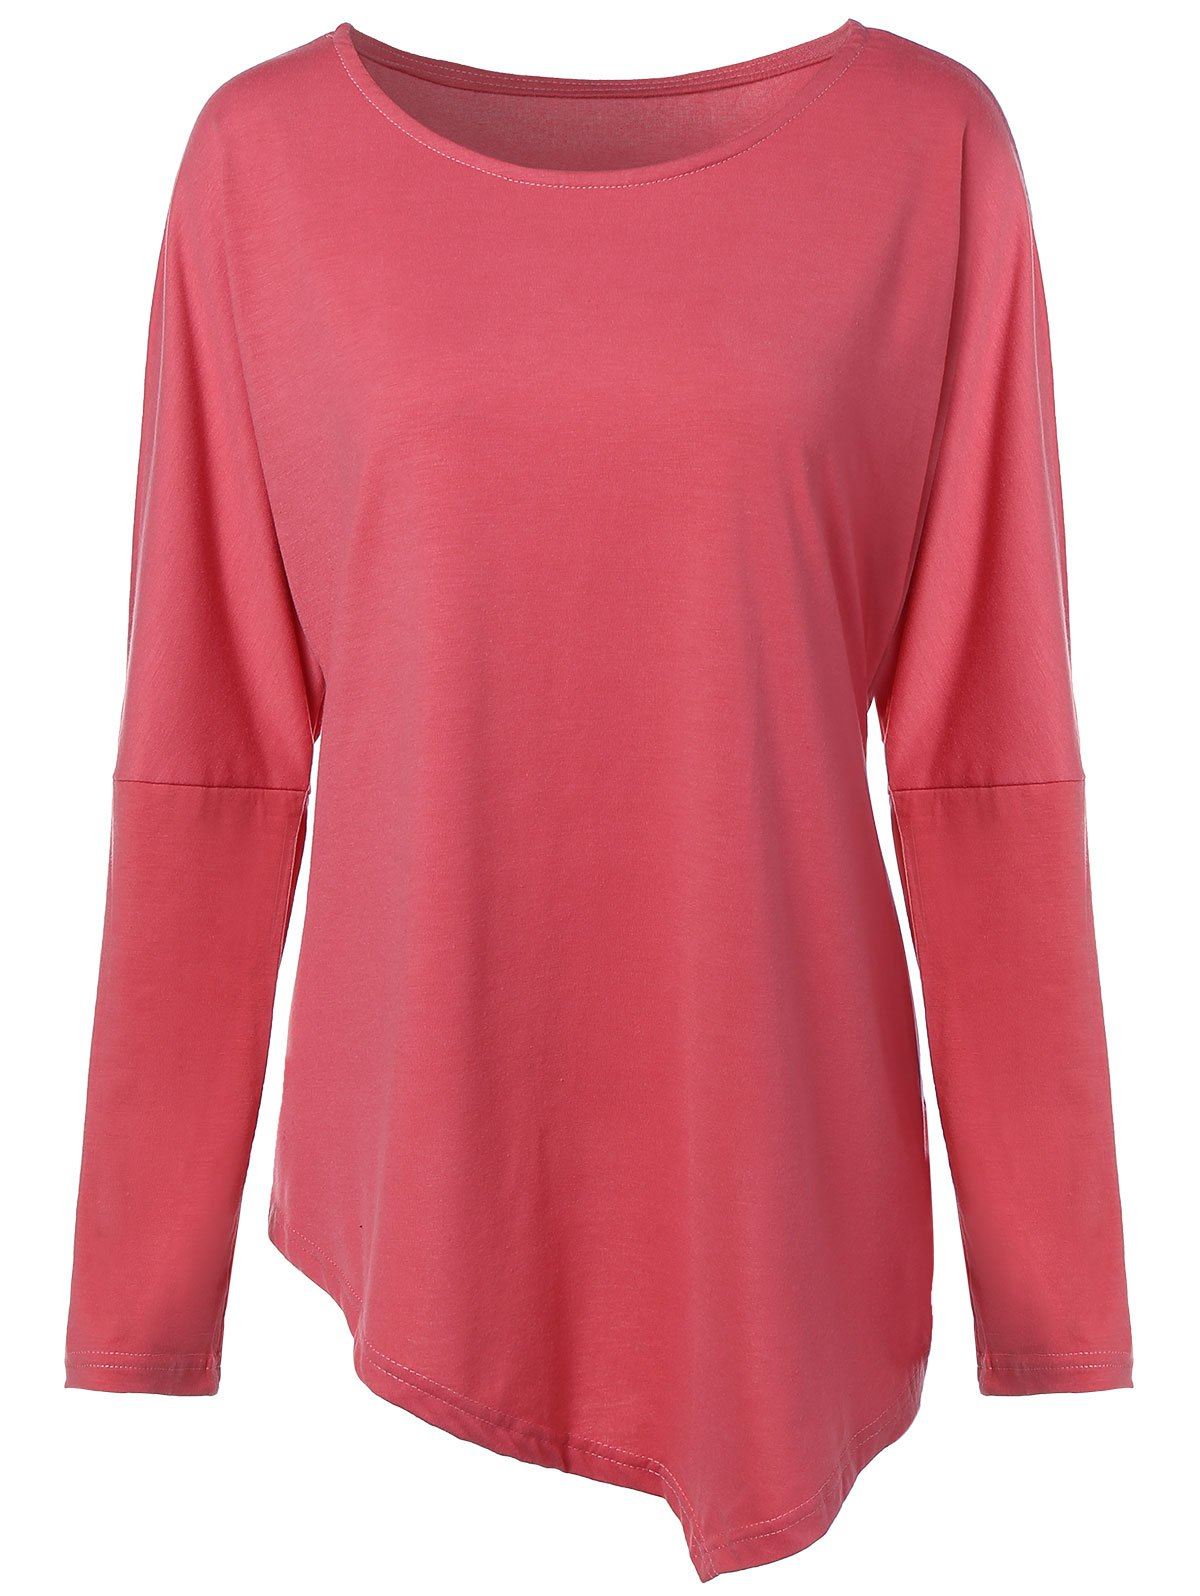 Stylish Scoop Neck Long Sleeve Women's Plus Size Top